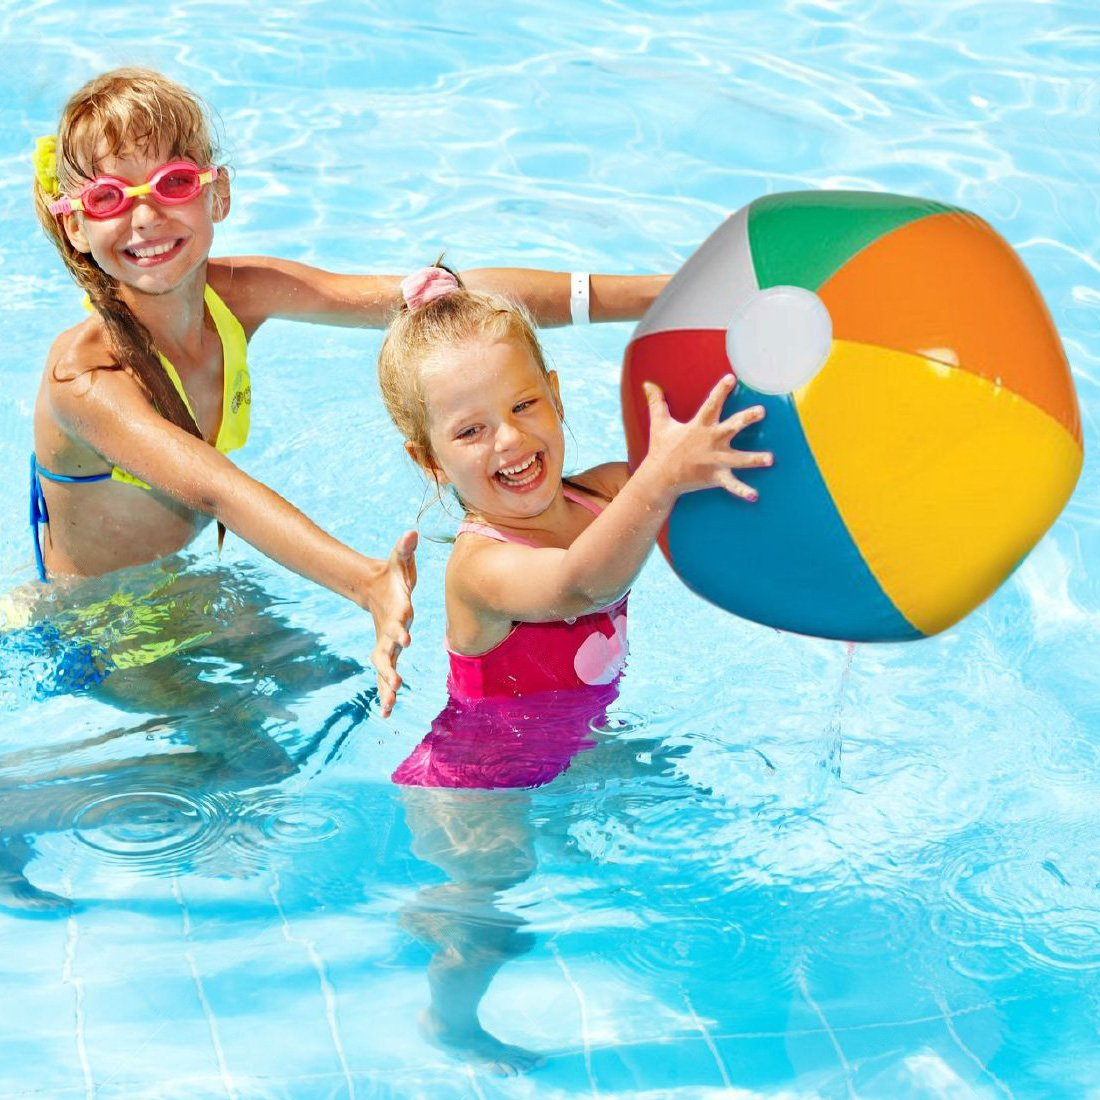 Inflatable Jumbo Beach Balls - 6 Pack - Bright Rainbow Colored Pool Toys for Kids and Adults - By Dazzling Toys